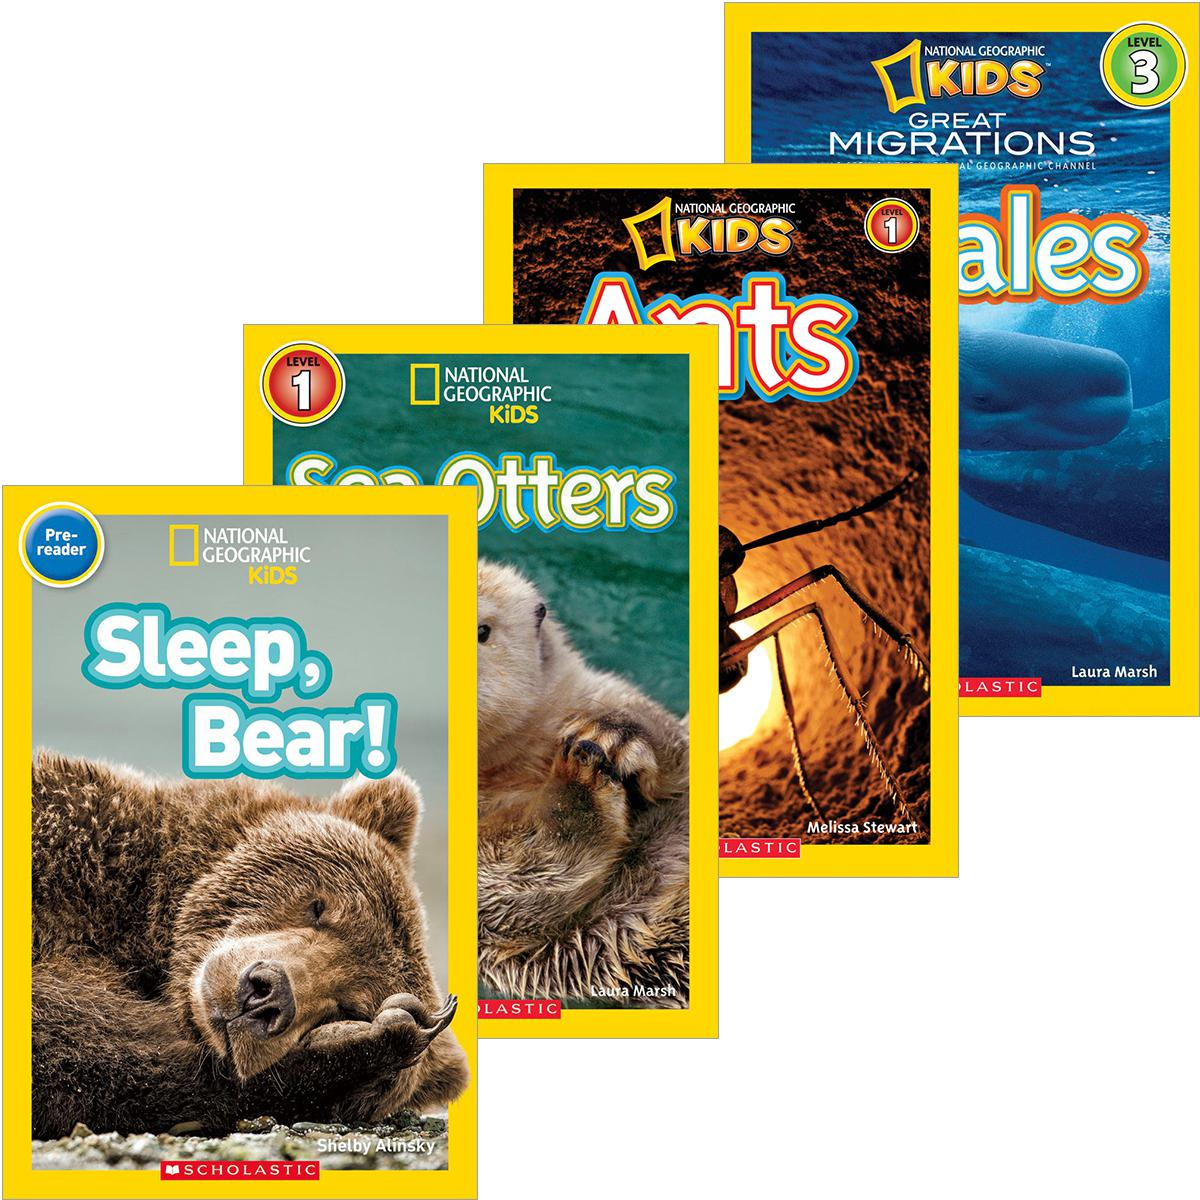 National Geographic KidsReaders Classroom Pack